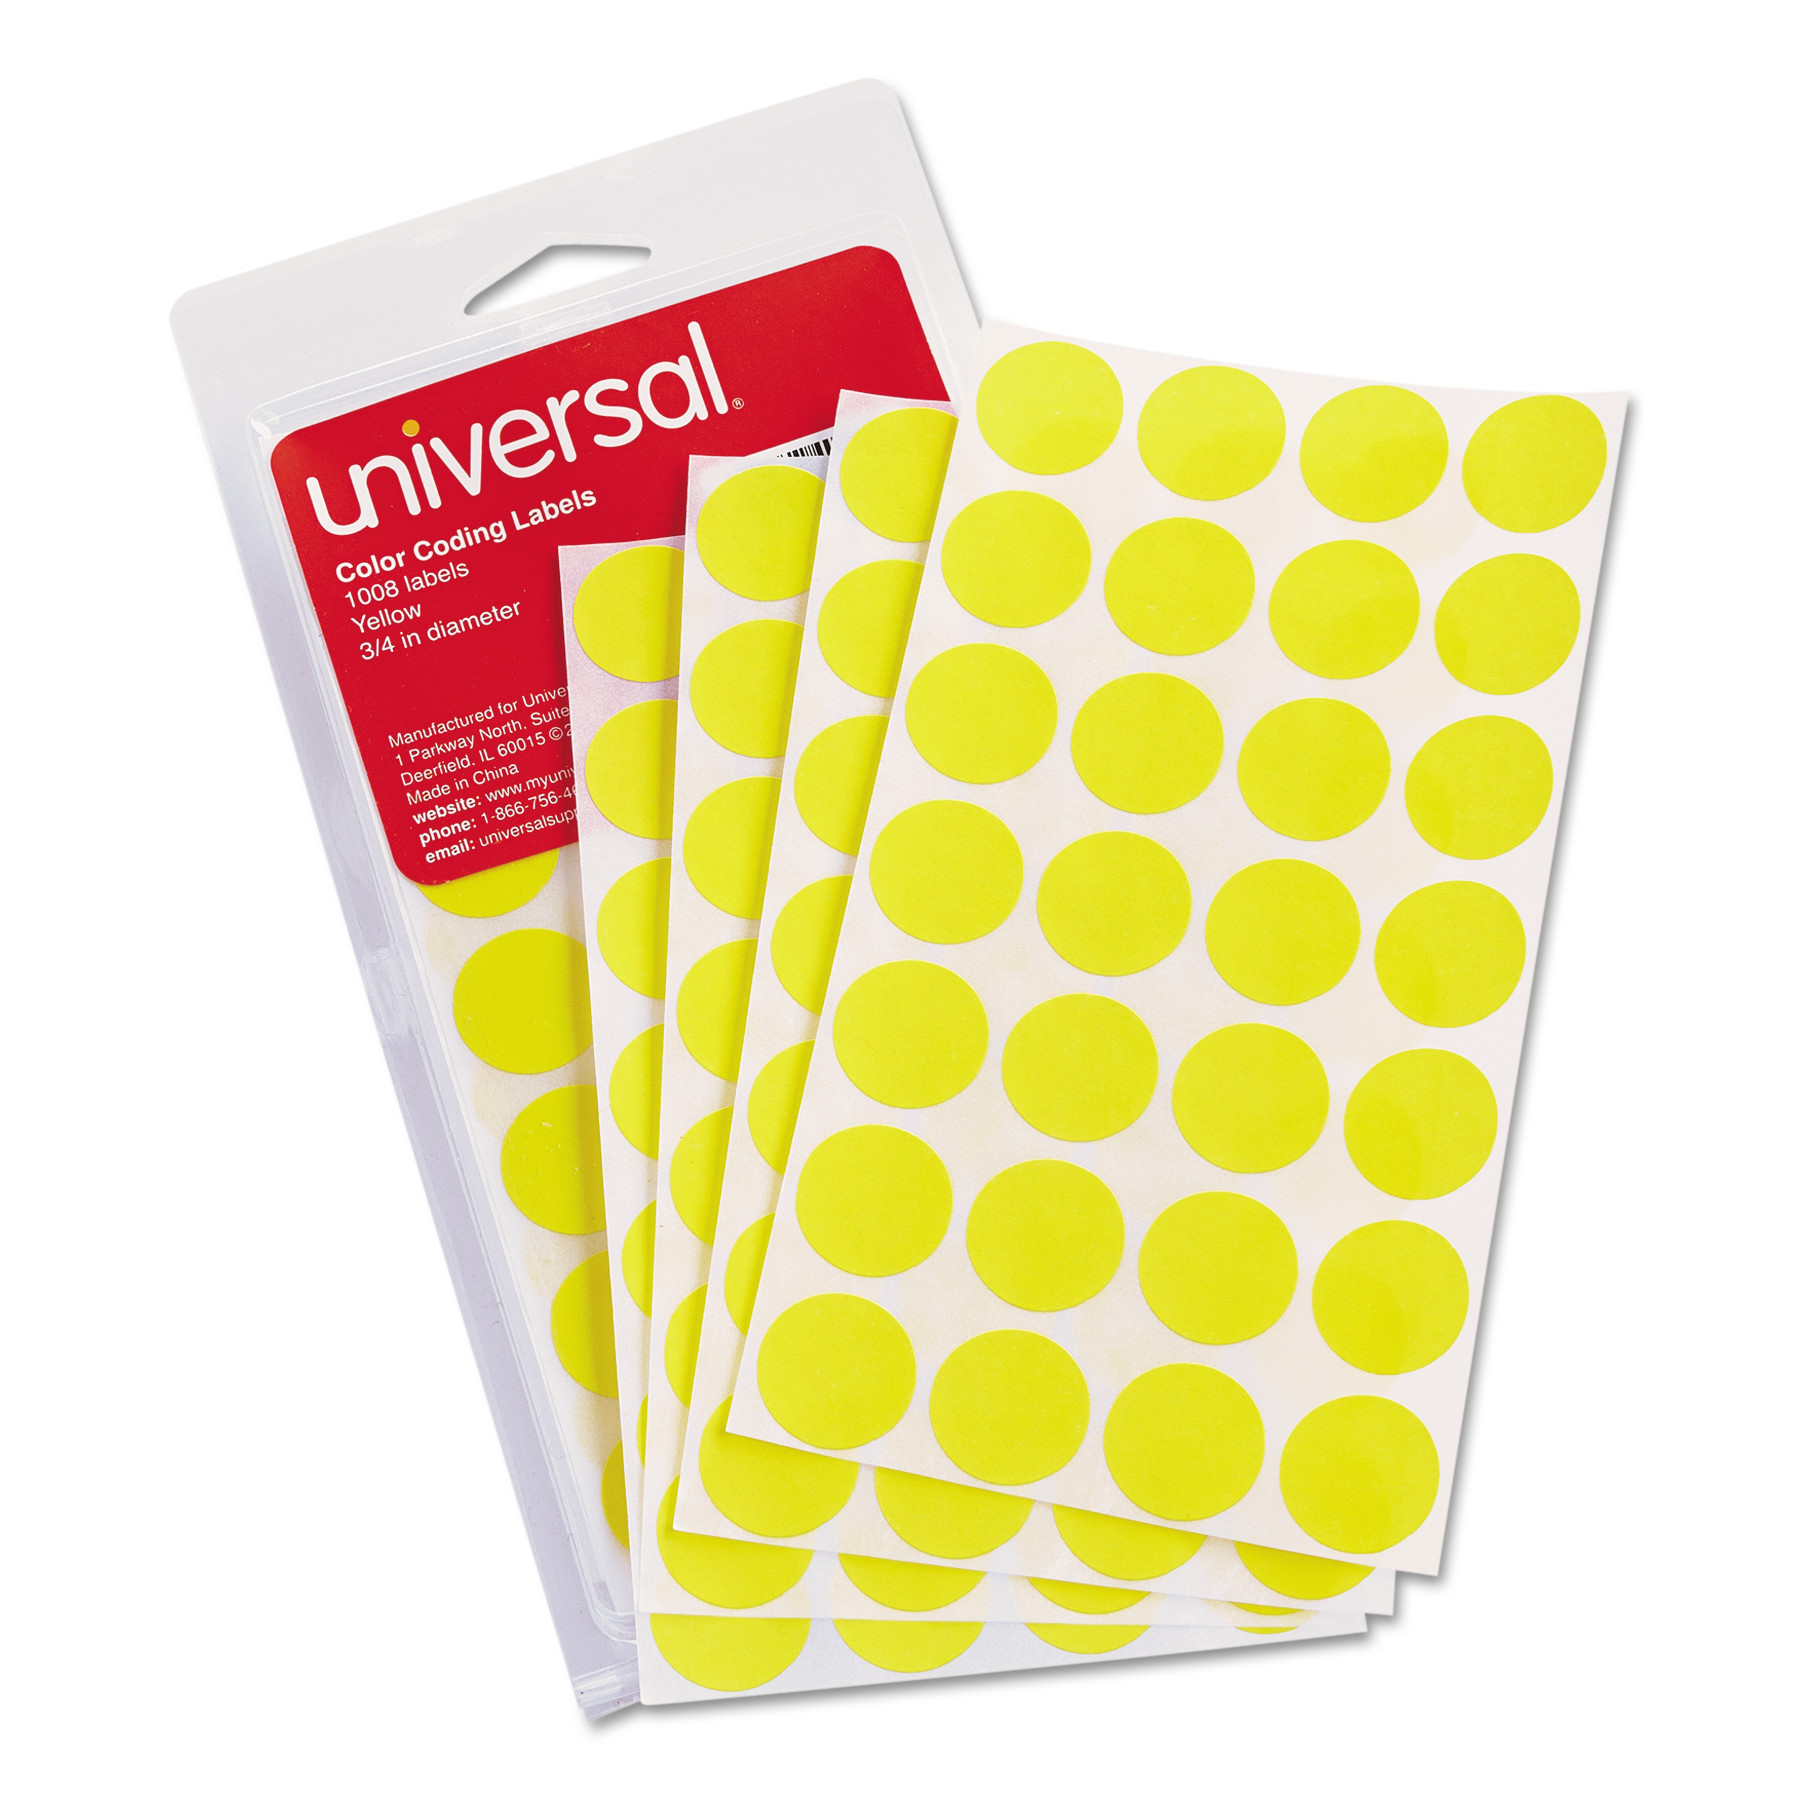 "Universal Self-Adhesive Removable Color-Coding Labels, 3/4"" dia, Yellow, 1008/Pack"